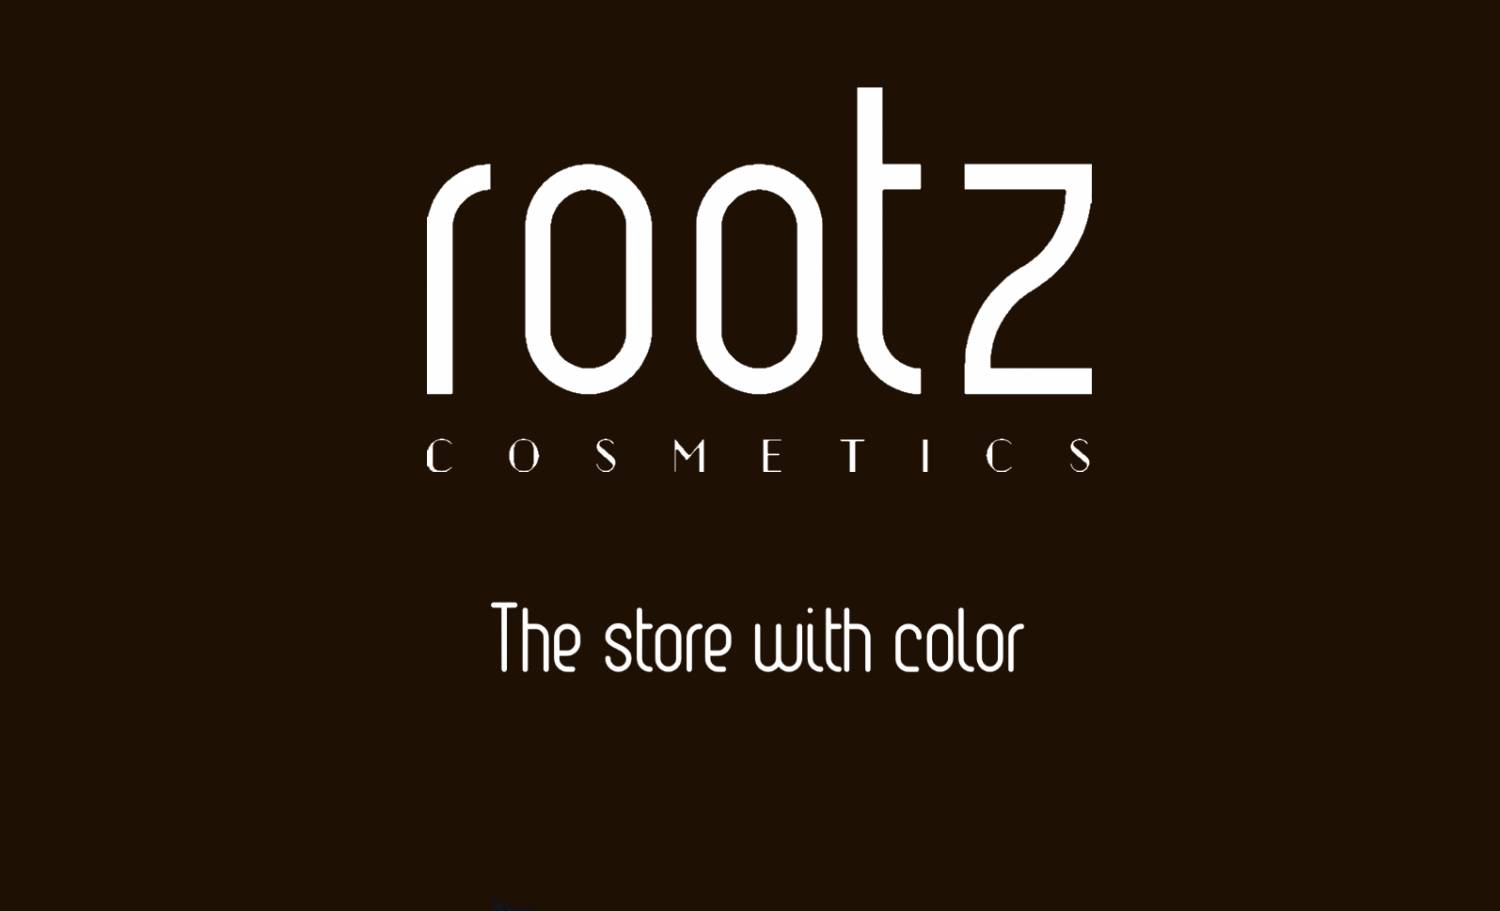 Rootz Cosmetics the store with color